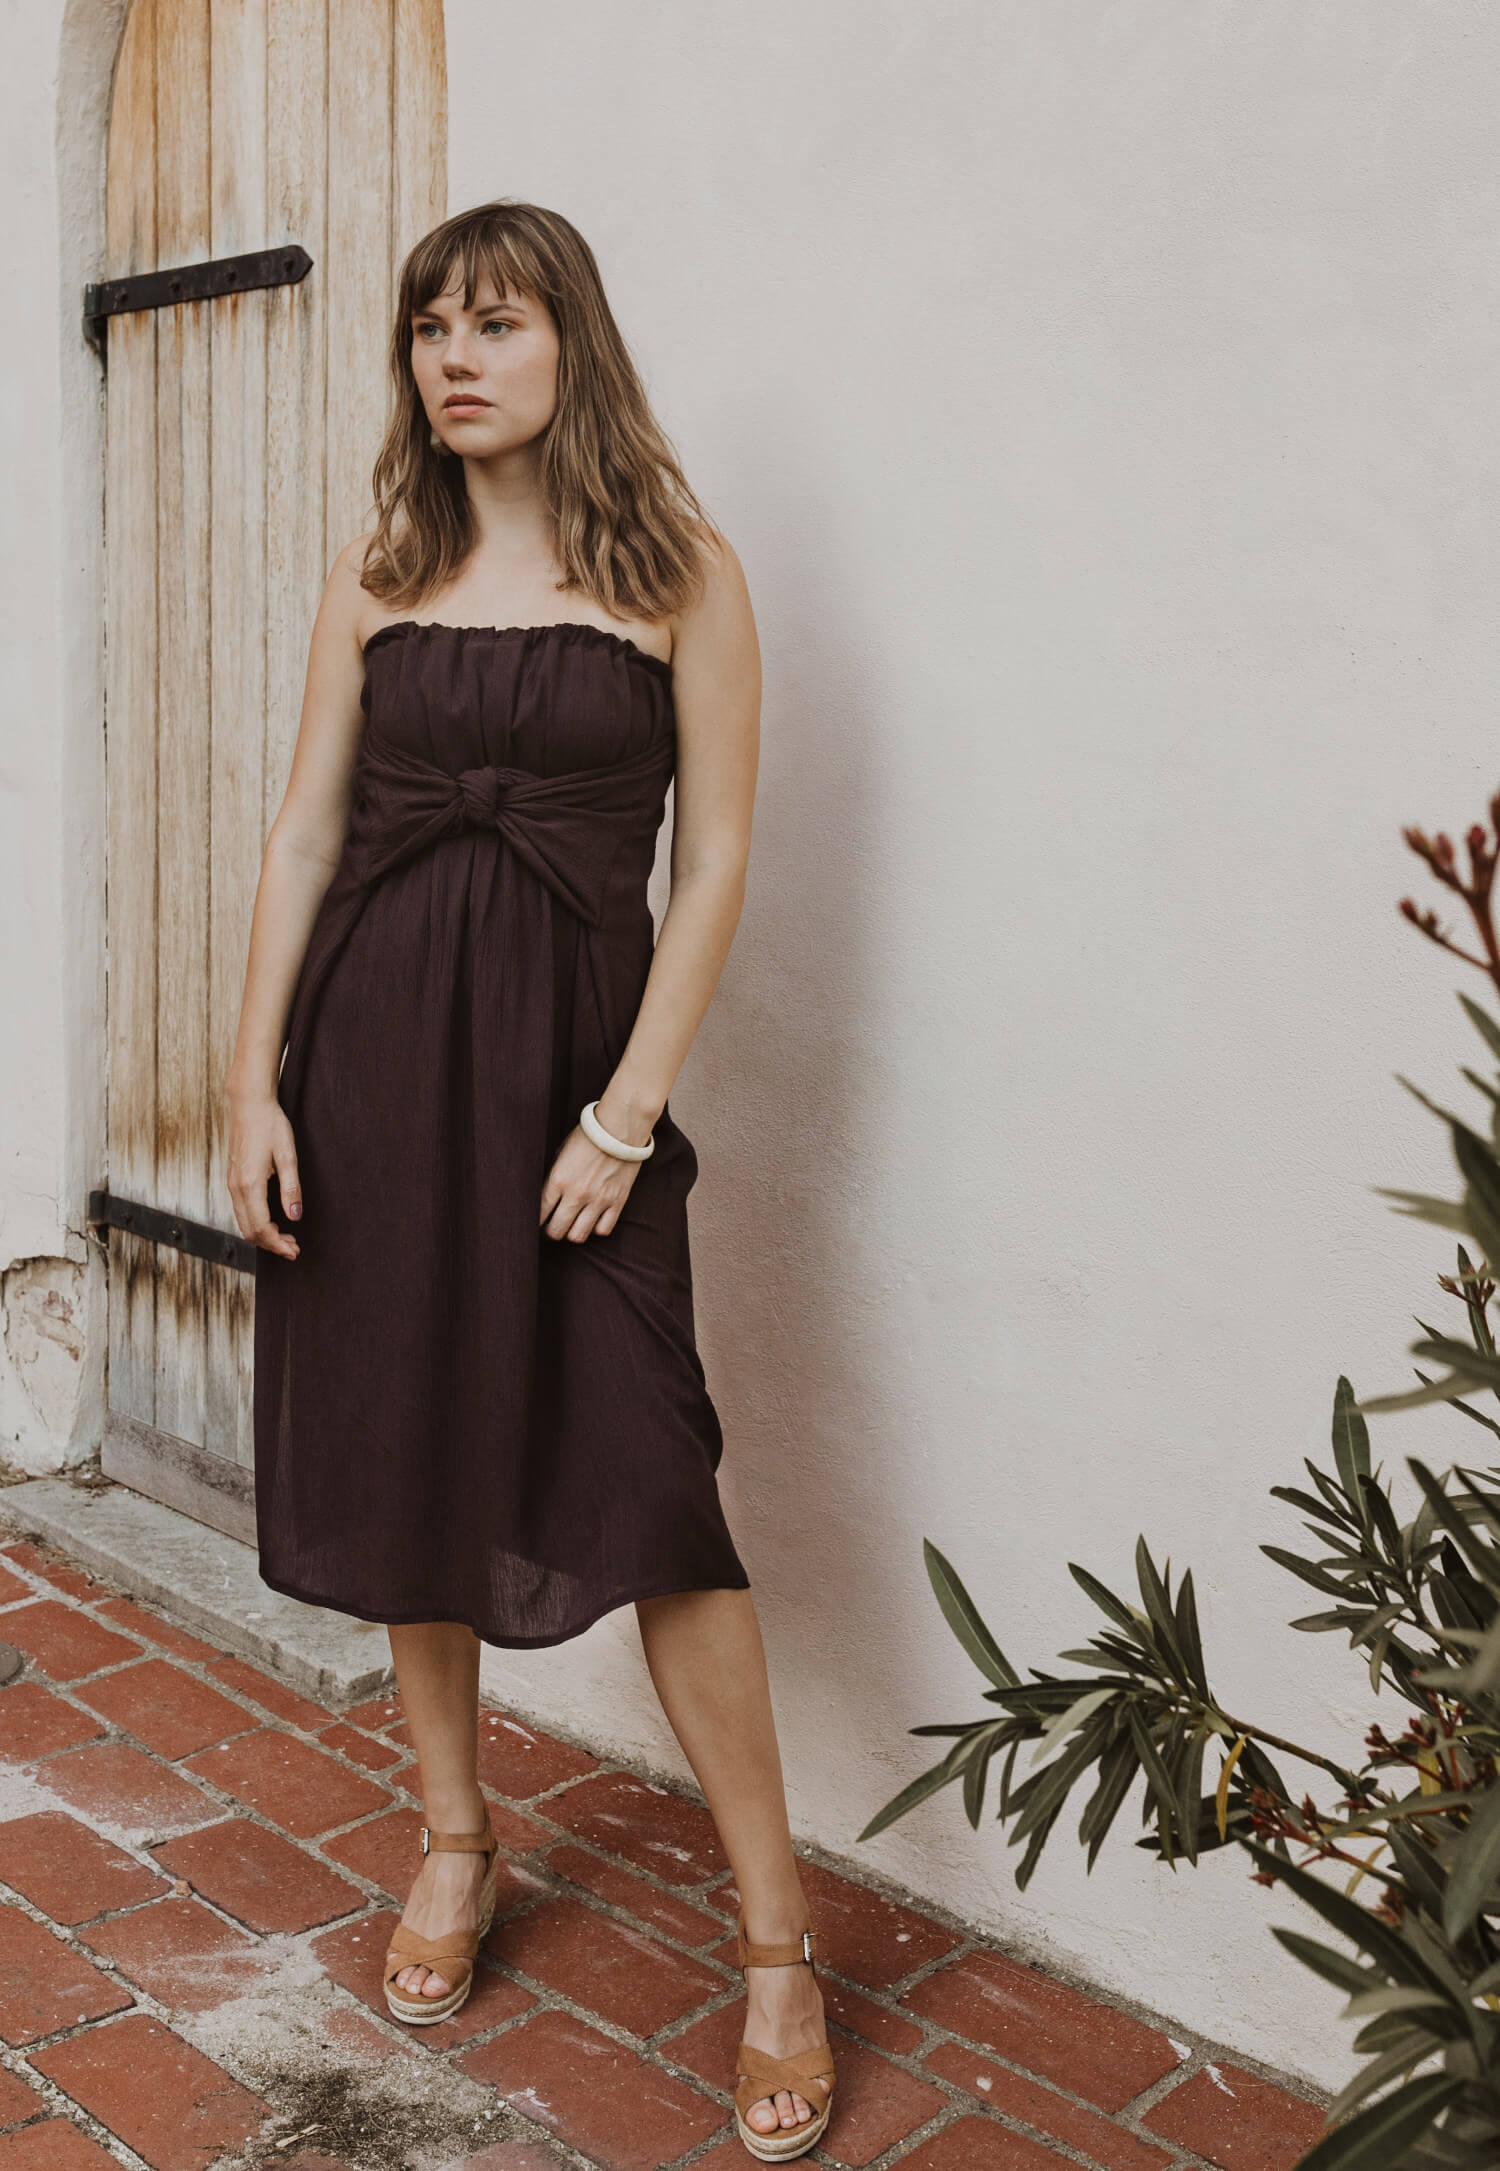 Brown strapless variable dress with a bow Prague